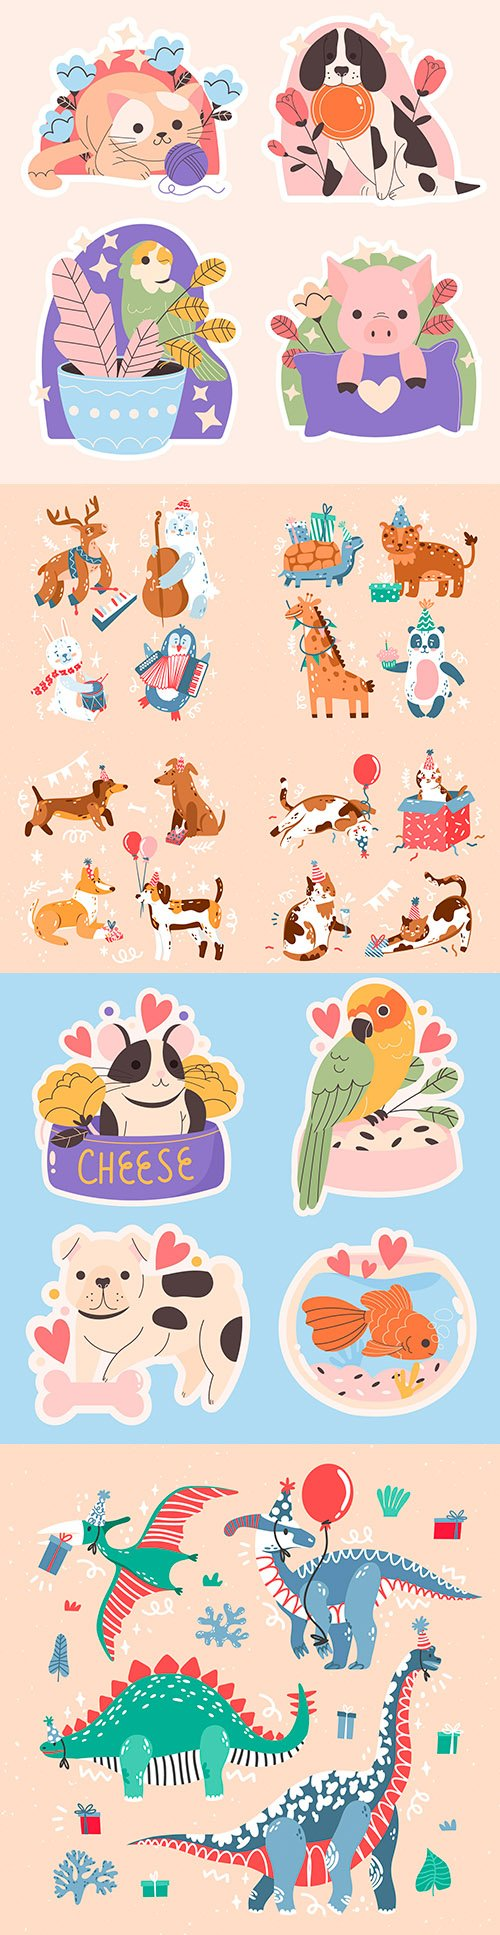 Animal cute collection of pictured birthday illustrations